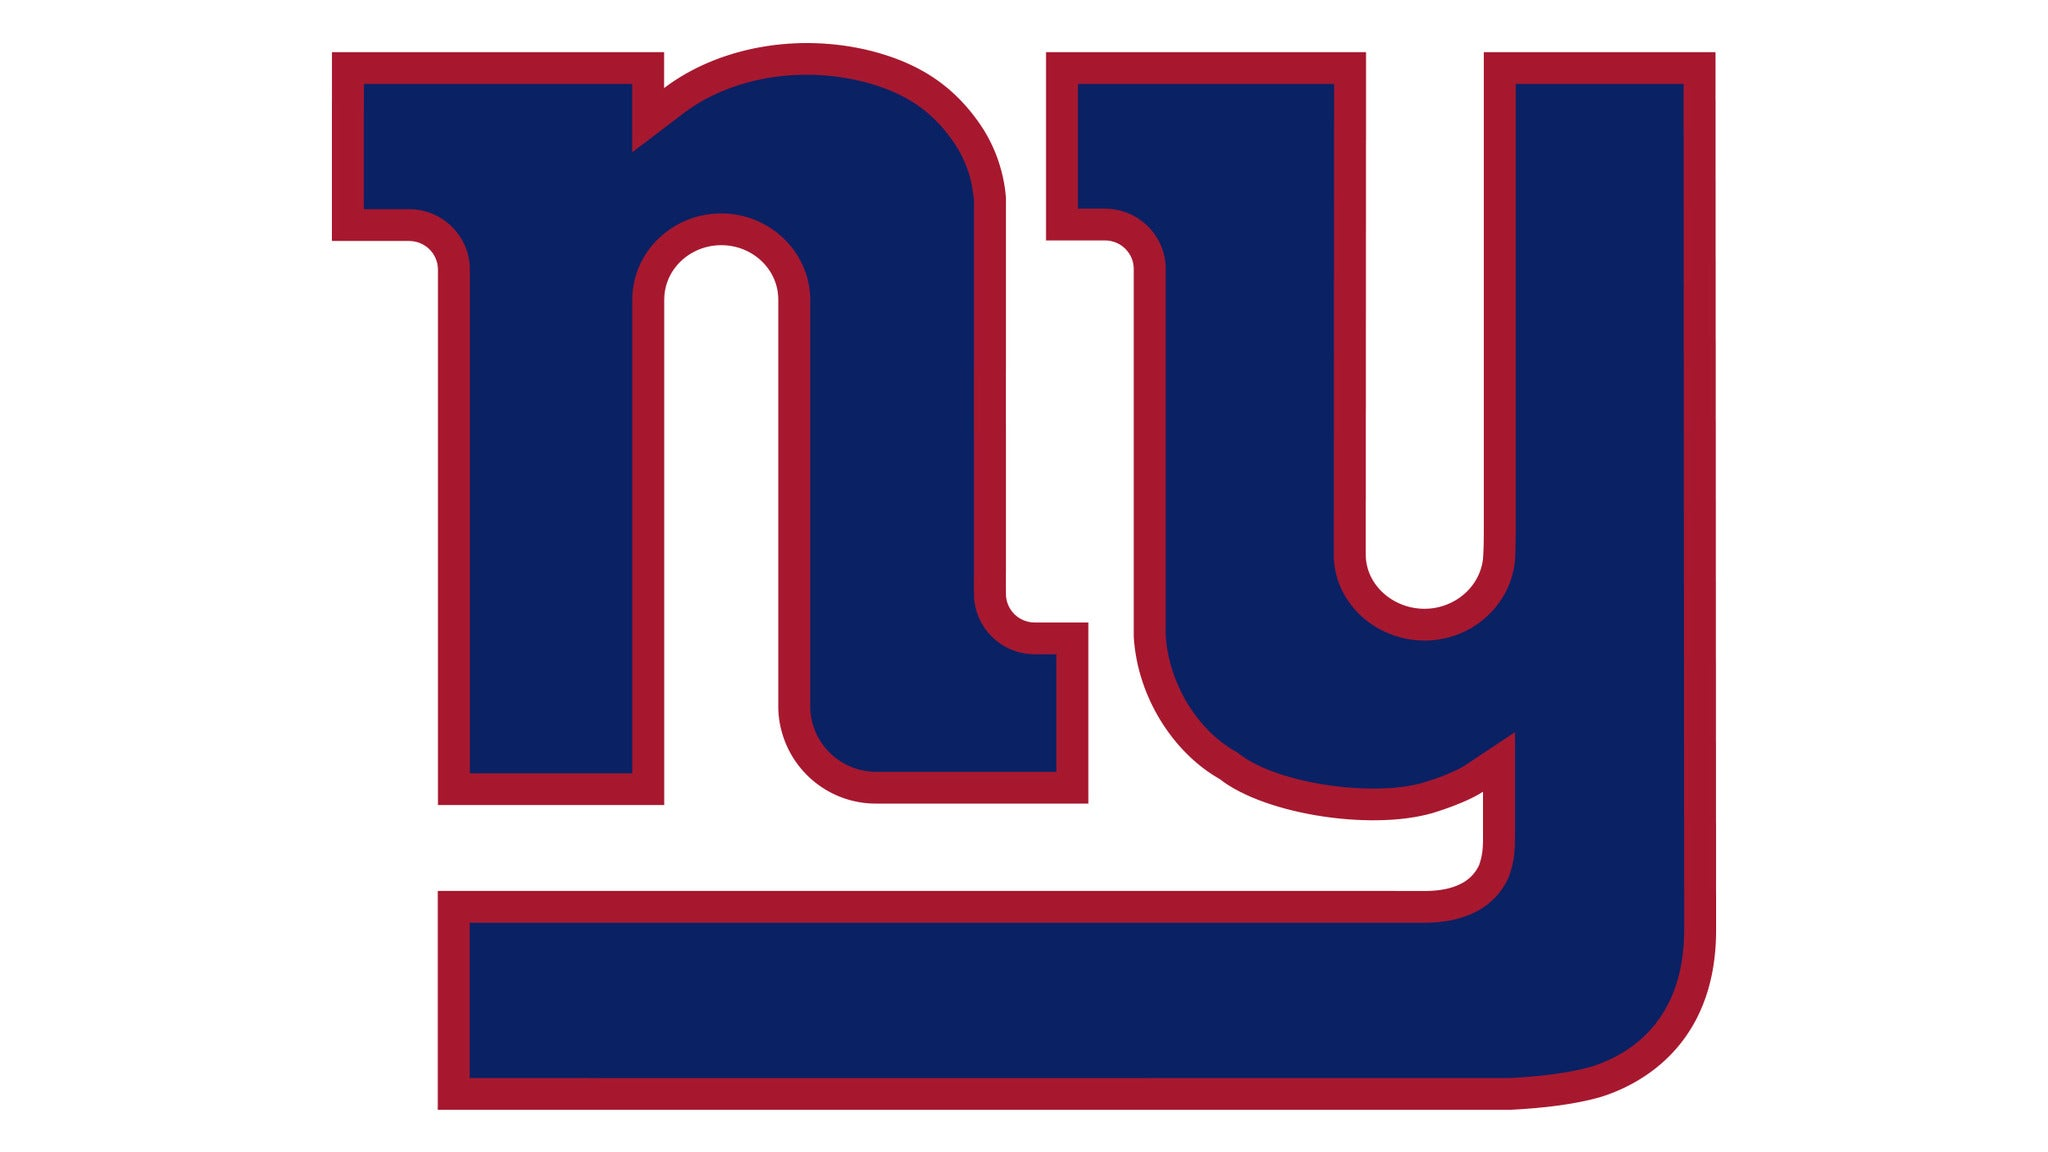 New York Giants vs. Chicago Bears at MetLife Stadium - East Rutherford, NJ 07073